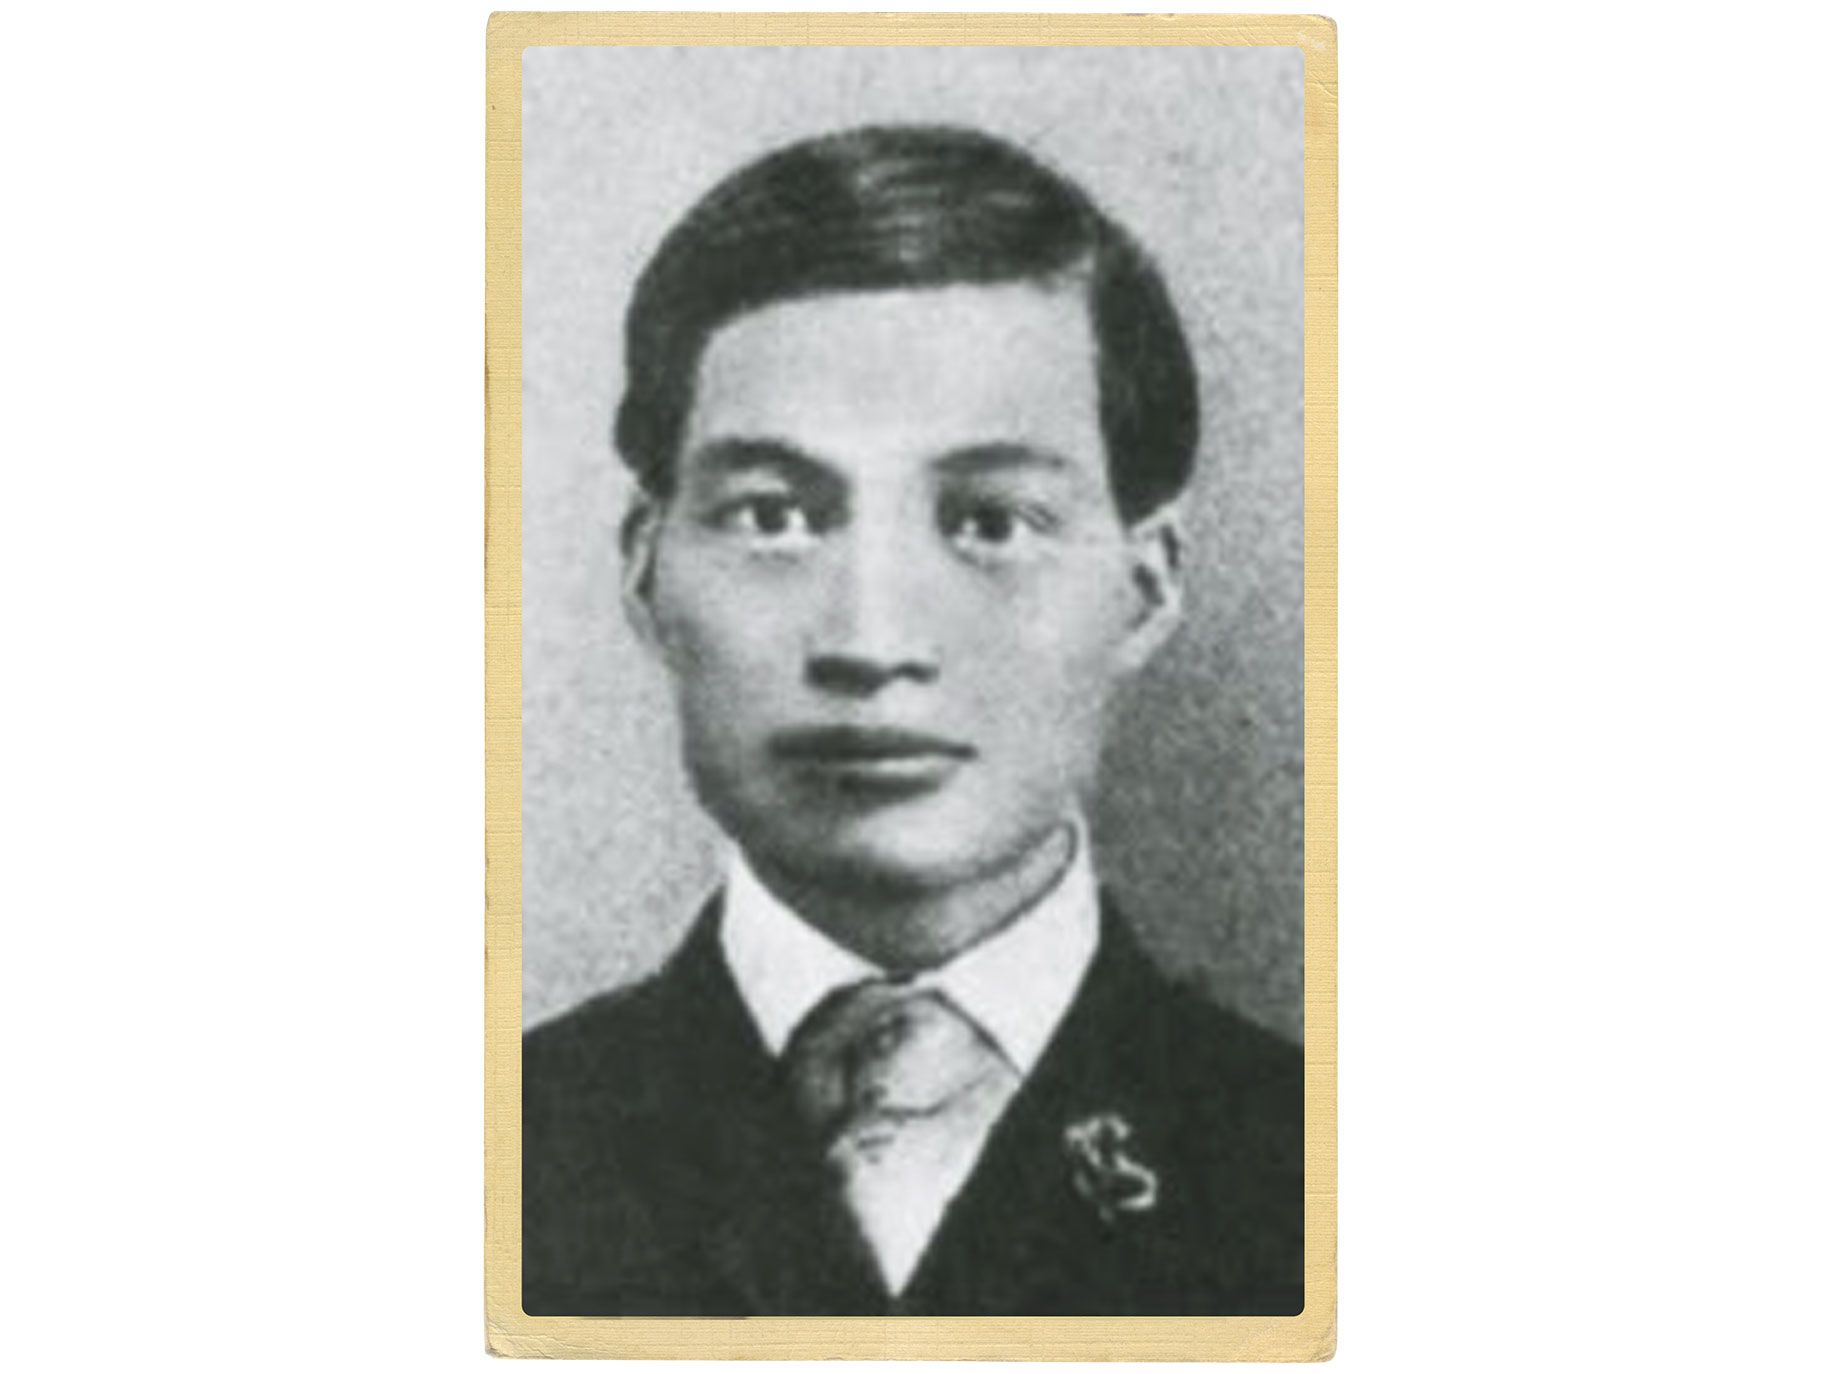 Feng Ru, known in San Francisco as Feng Joe Guey, emigrated from China to California in the 1890s.